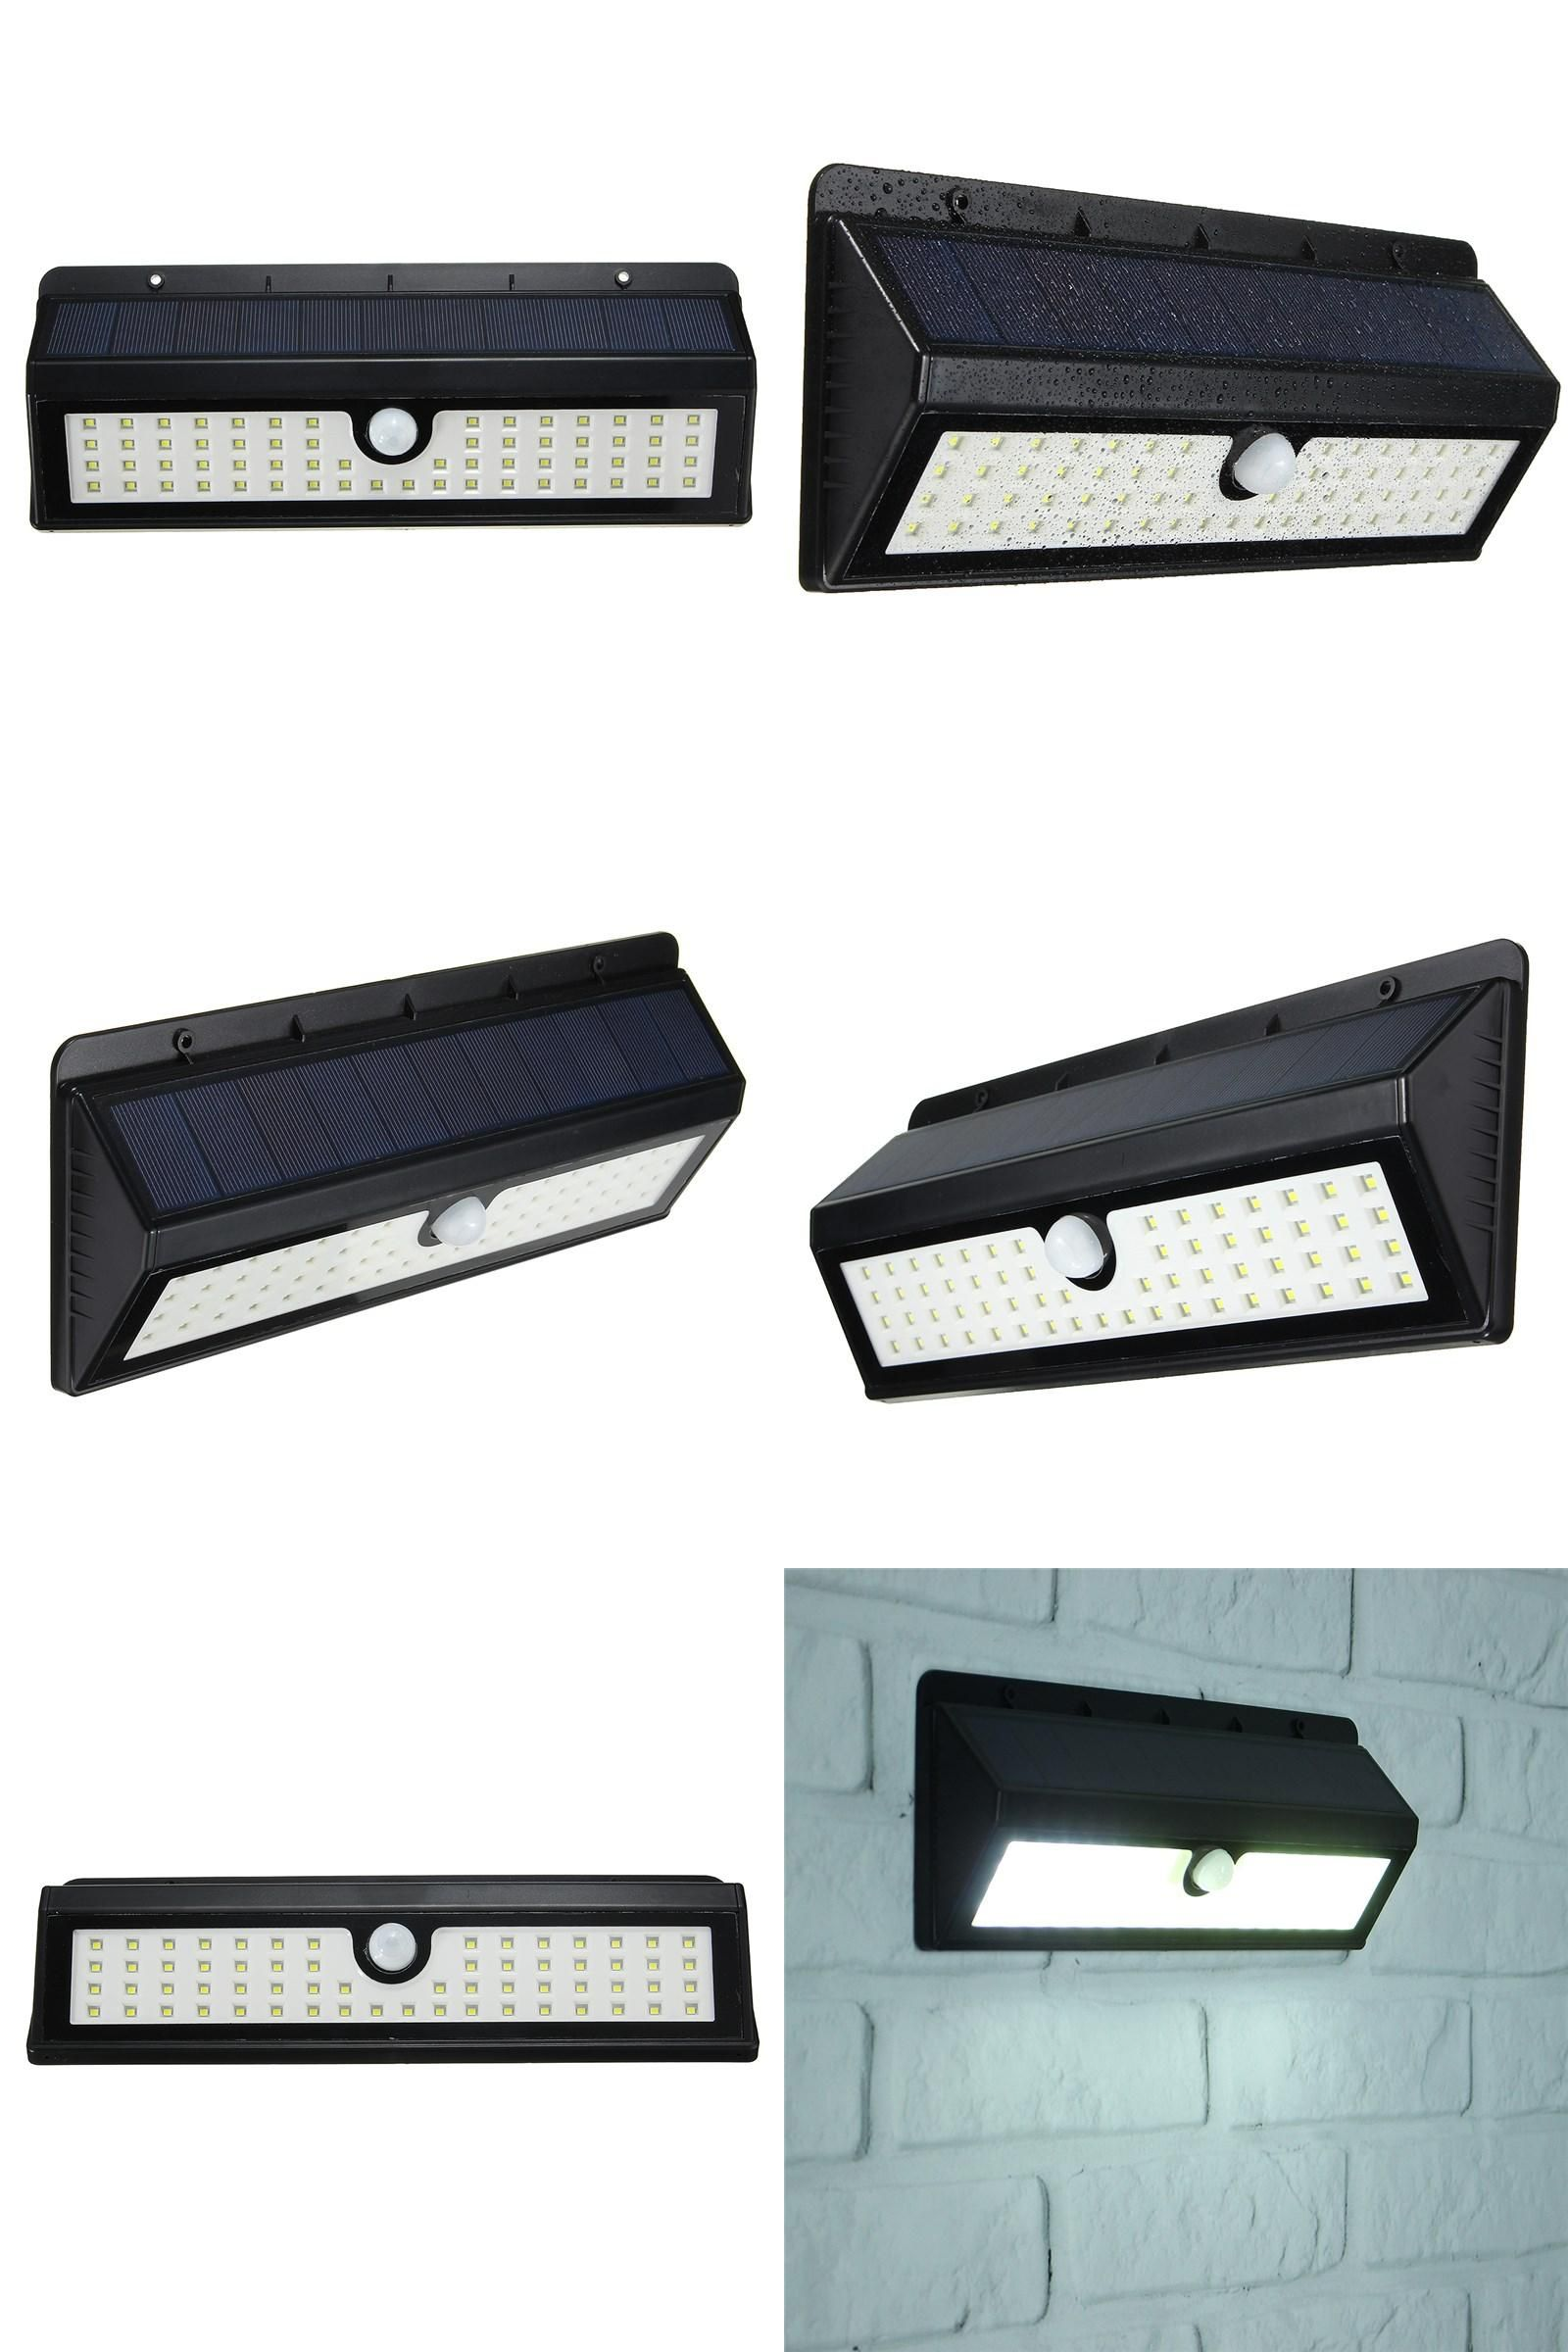 Visit To Buy 900lm 62 Led Solar Light Pir Motion Sensor Power No Wiring Wirless Wall Lamp For Outdoor Garden Waterproof Security Pathway Emergency